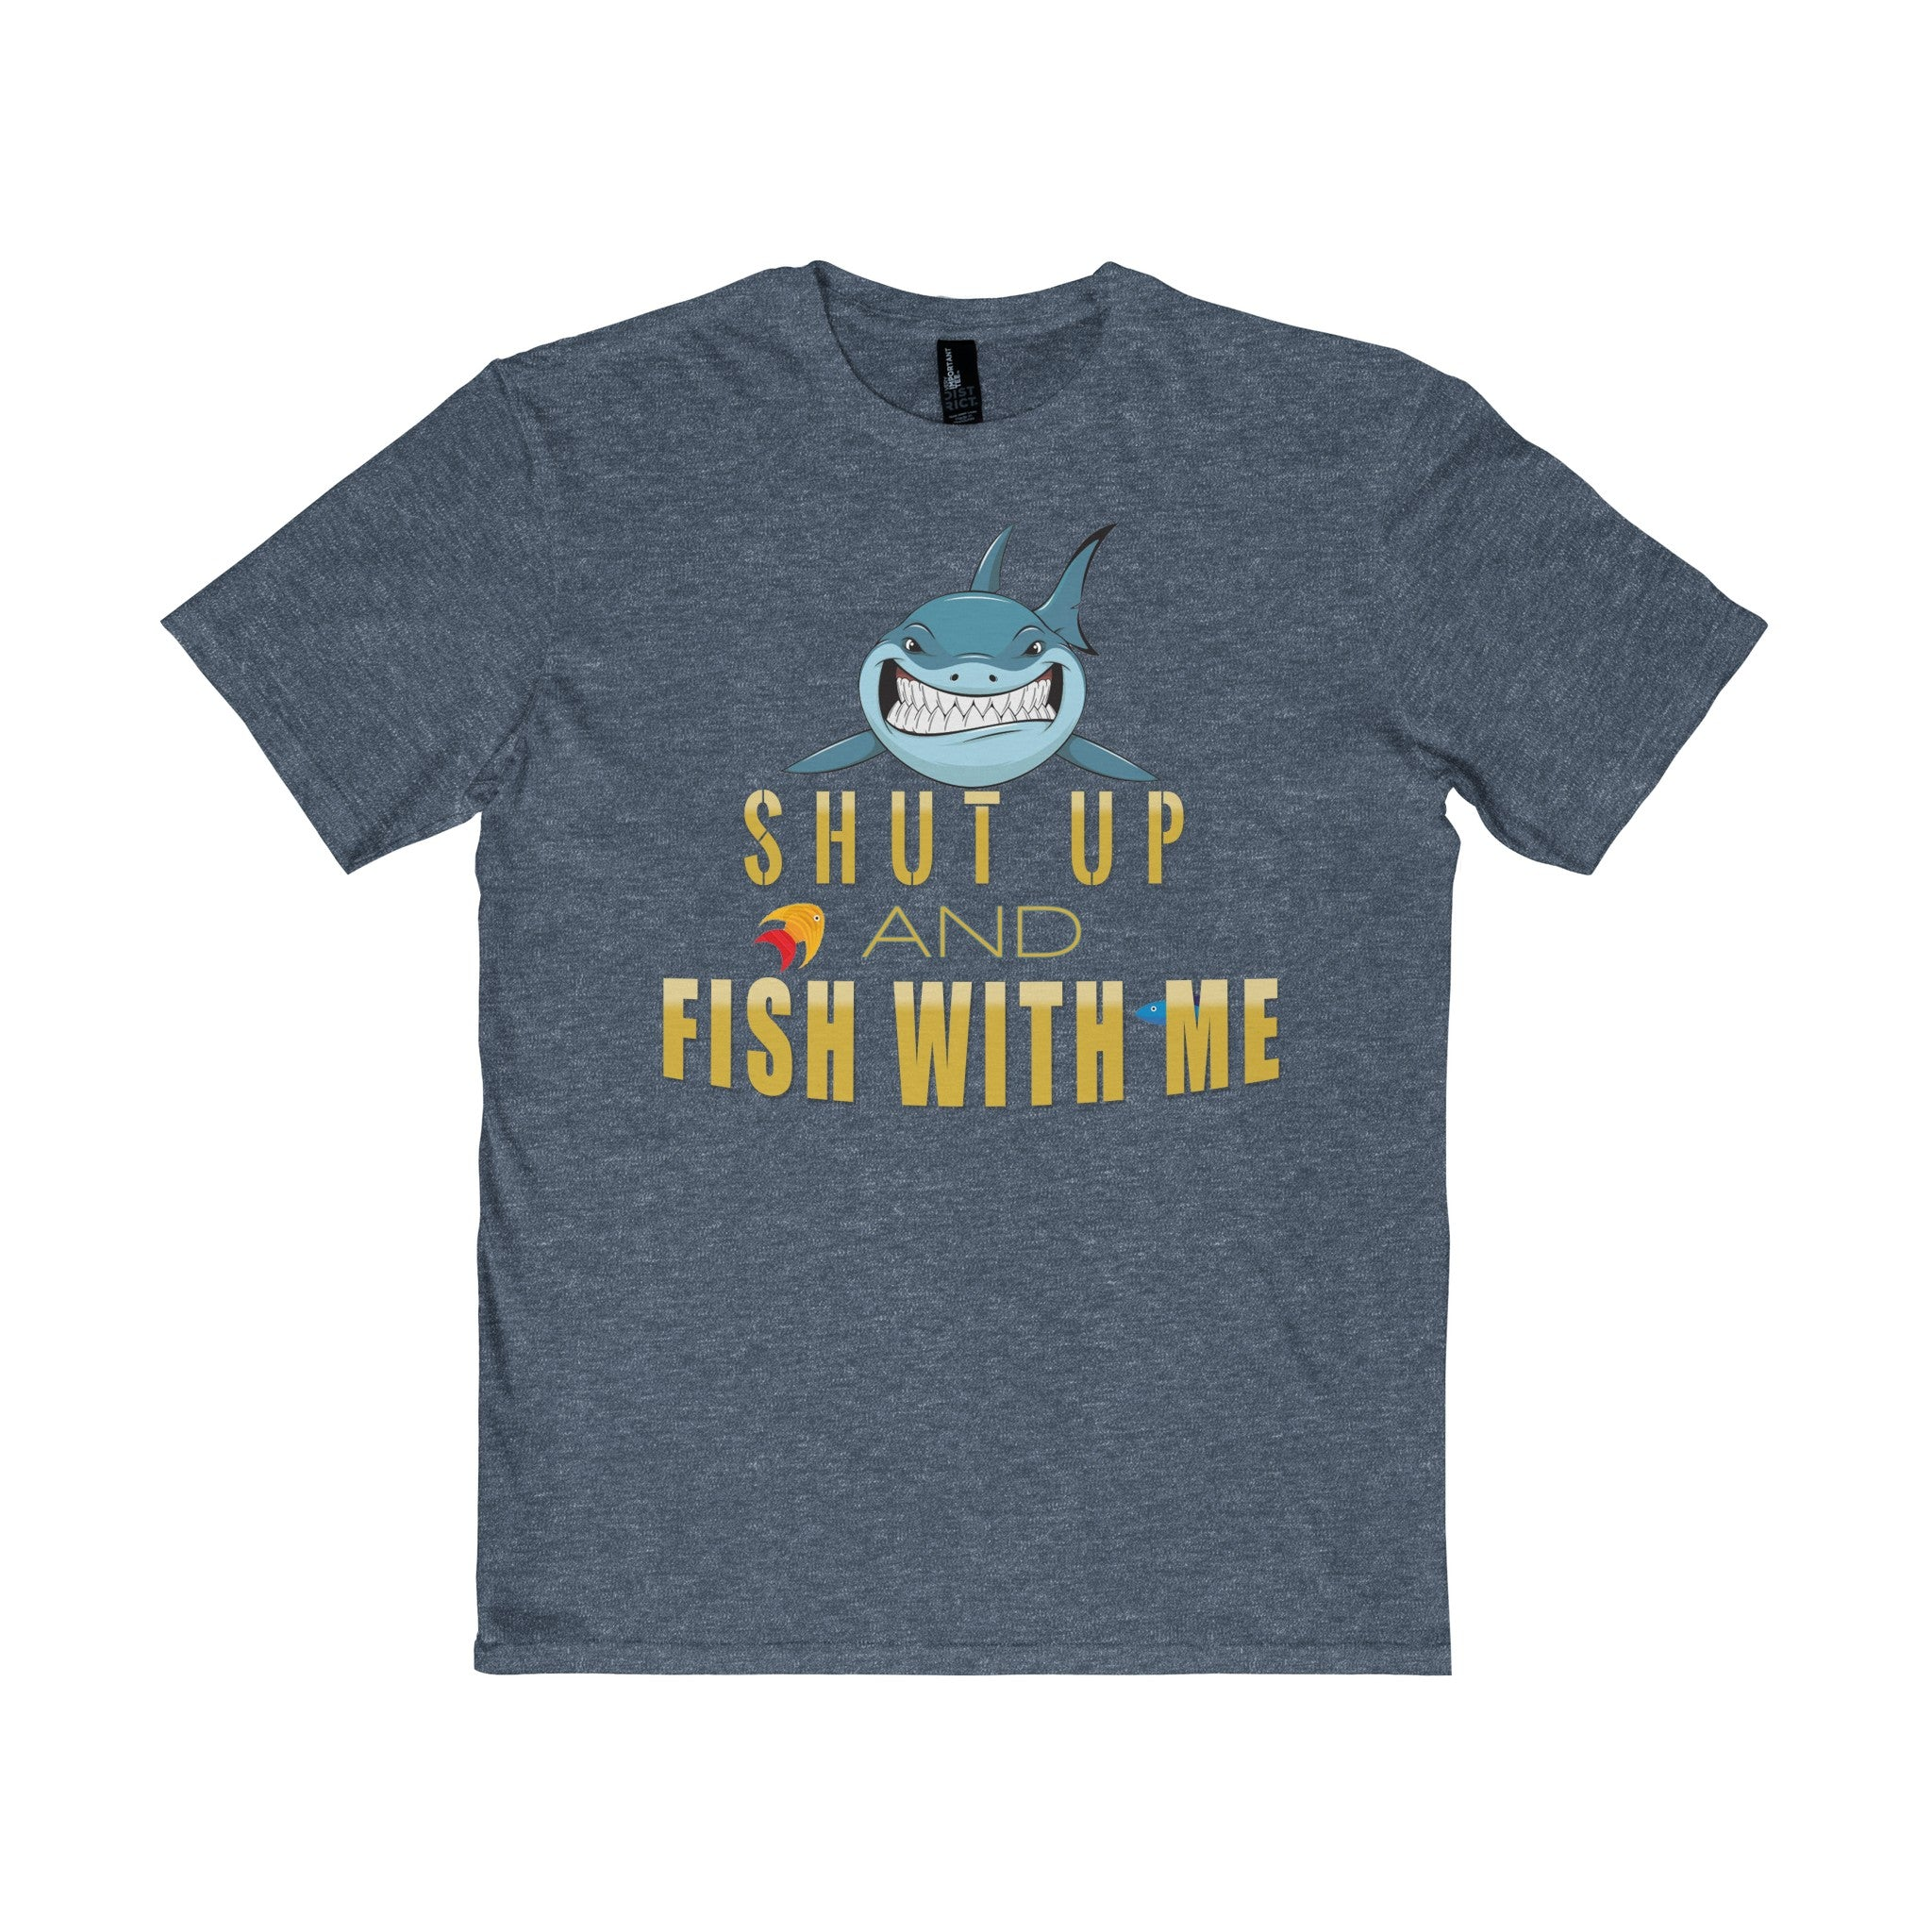 SHARK FISHER-SHIRT- SPECIAL EDITION- ON SALE TODAY GET YOURS